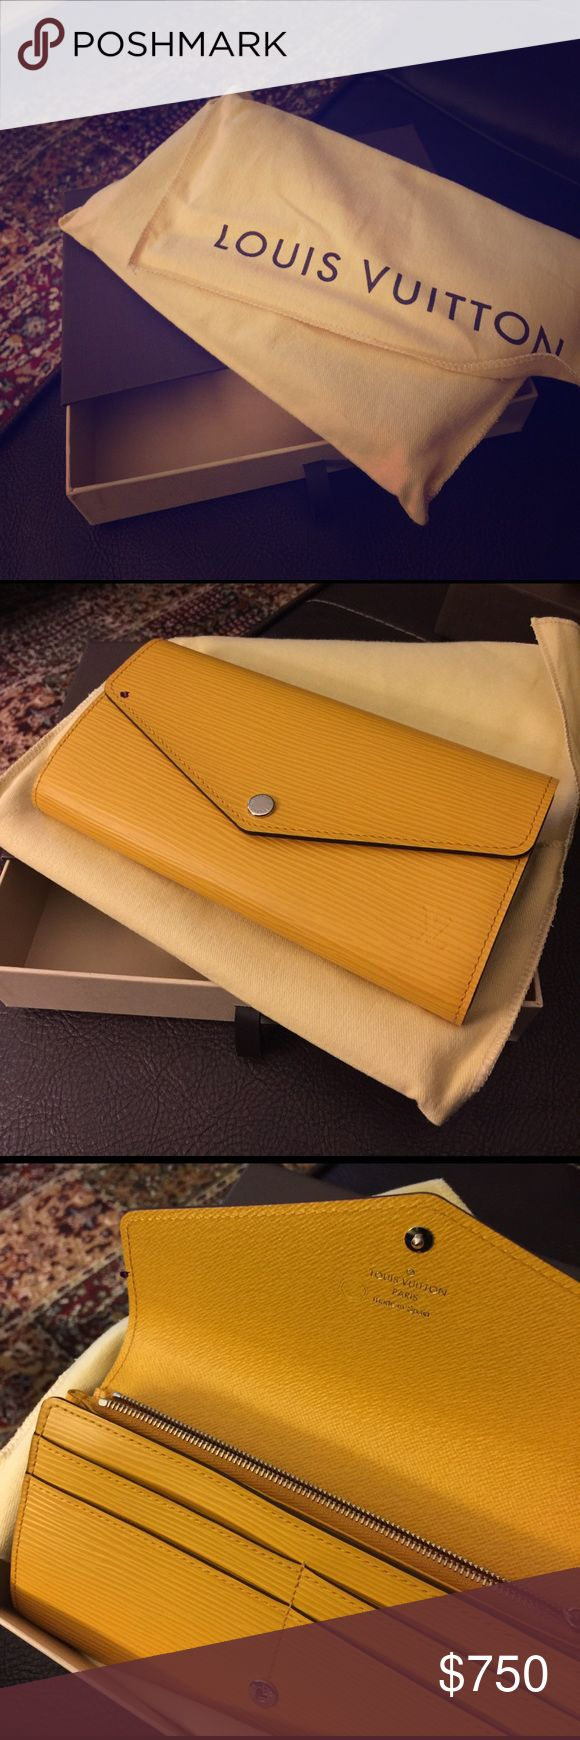 Louise Vuitton Sarah Wallet in Epi Mimosa Brand new, never used excellent condition Louis Vuitton Bags Wallets